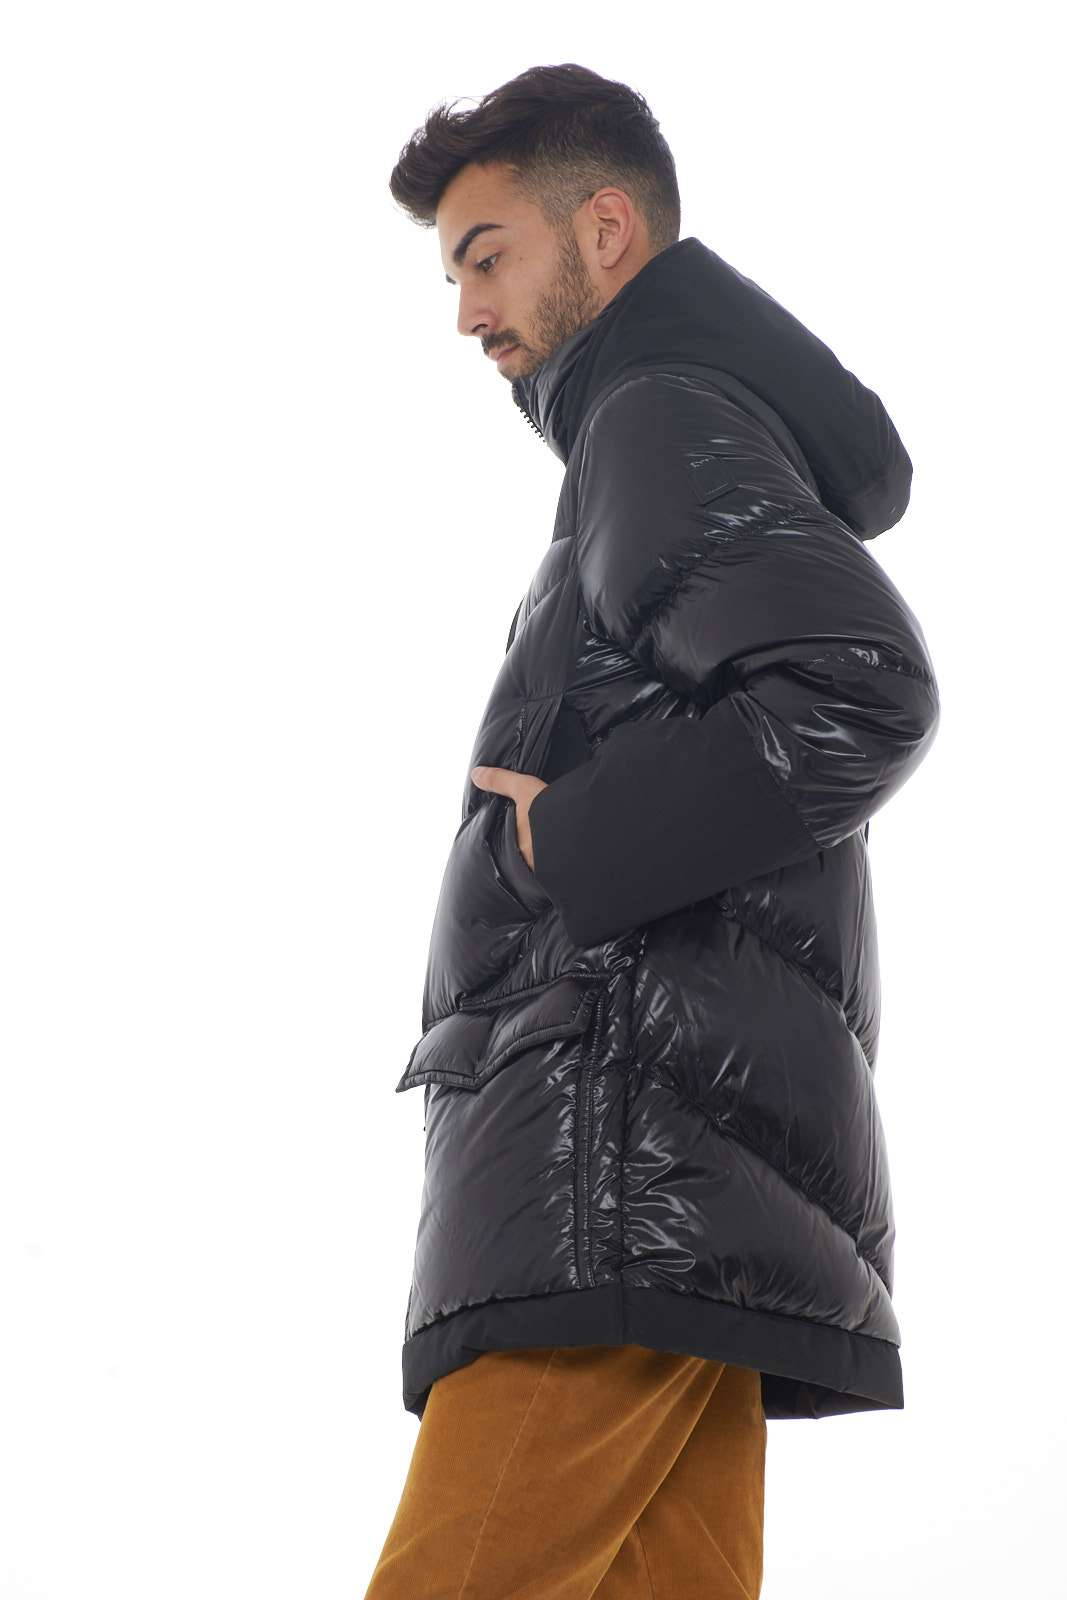 https://www.parmax.com/media/catalog/product/a/i/AI-outlet_parmax-giubbino-uomo-Woolrich-WOCPS2860-B.jpg